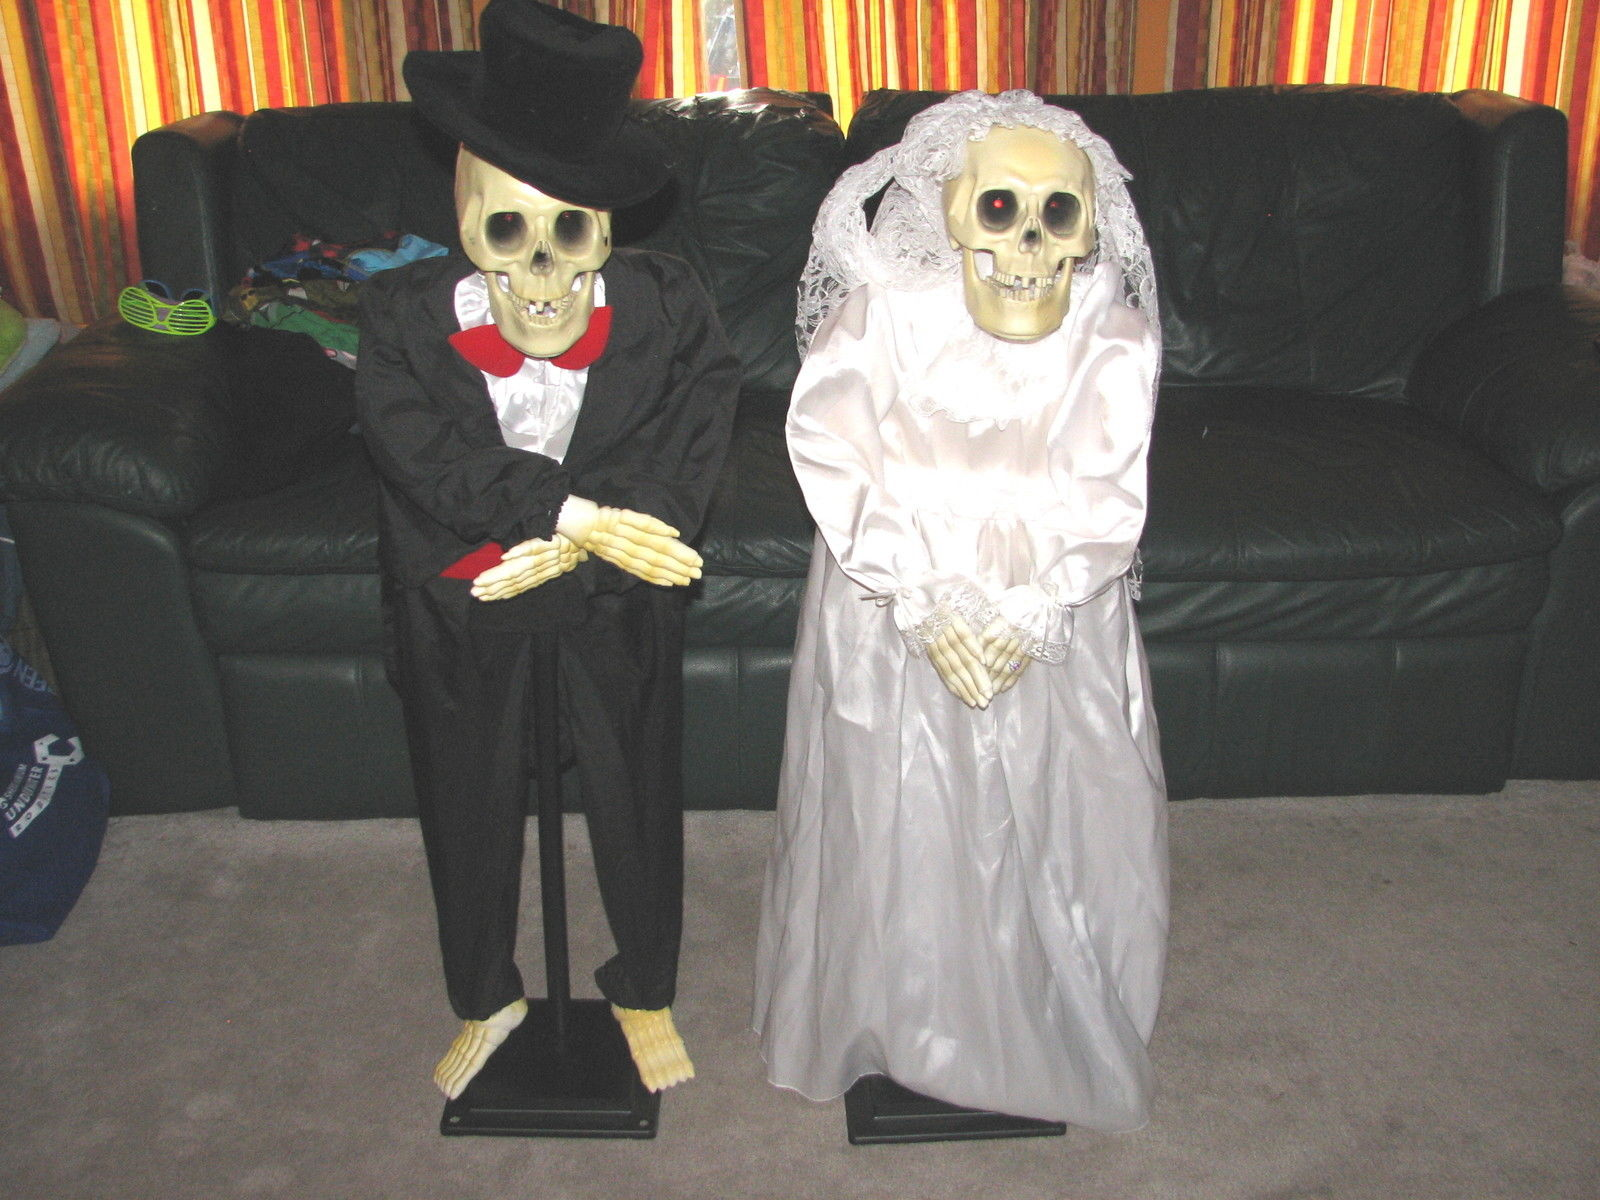 gemmy halloween animated sound activated talking skeleton bride groom work 02jpg - Www Gemmy Com Halloween